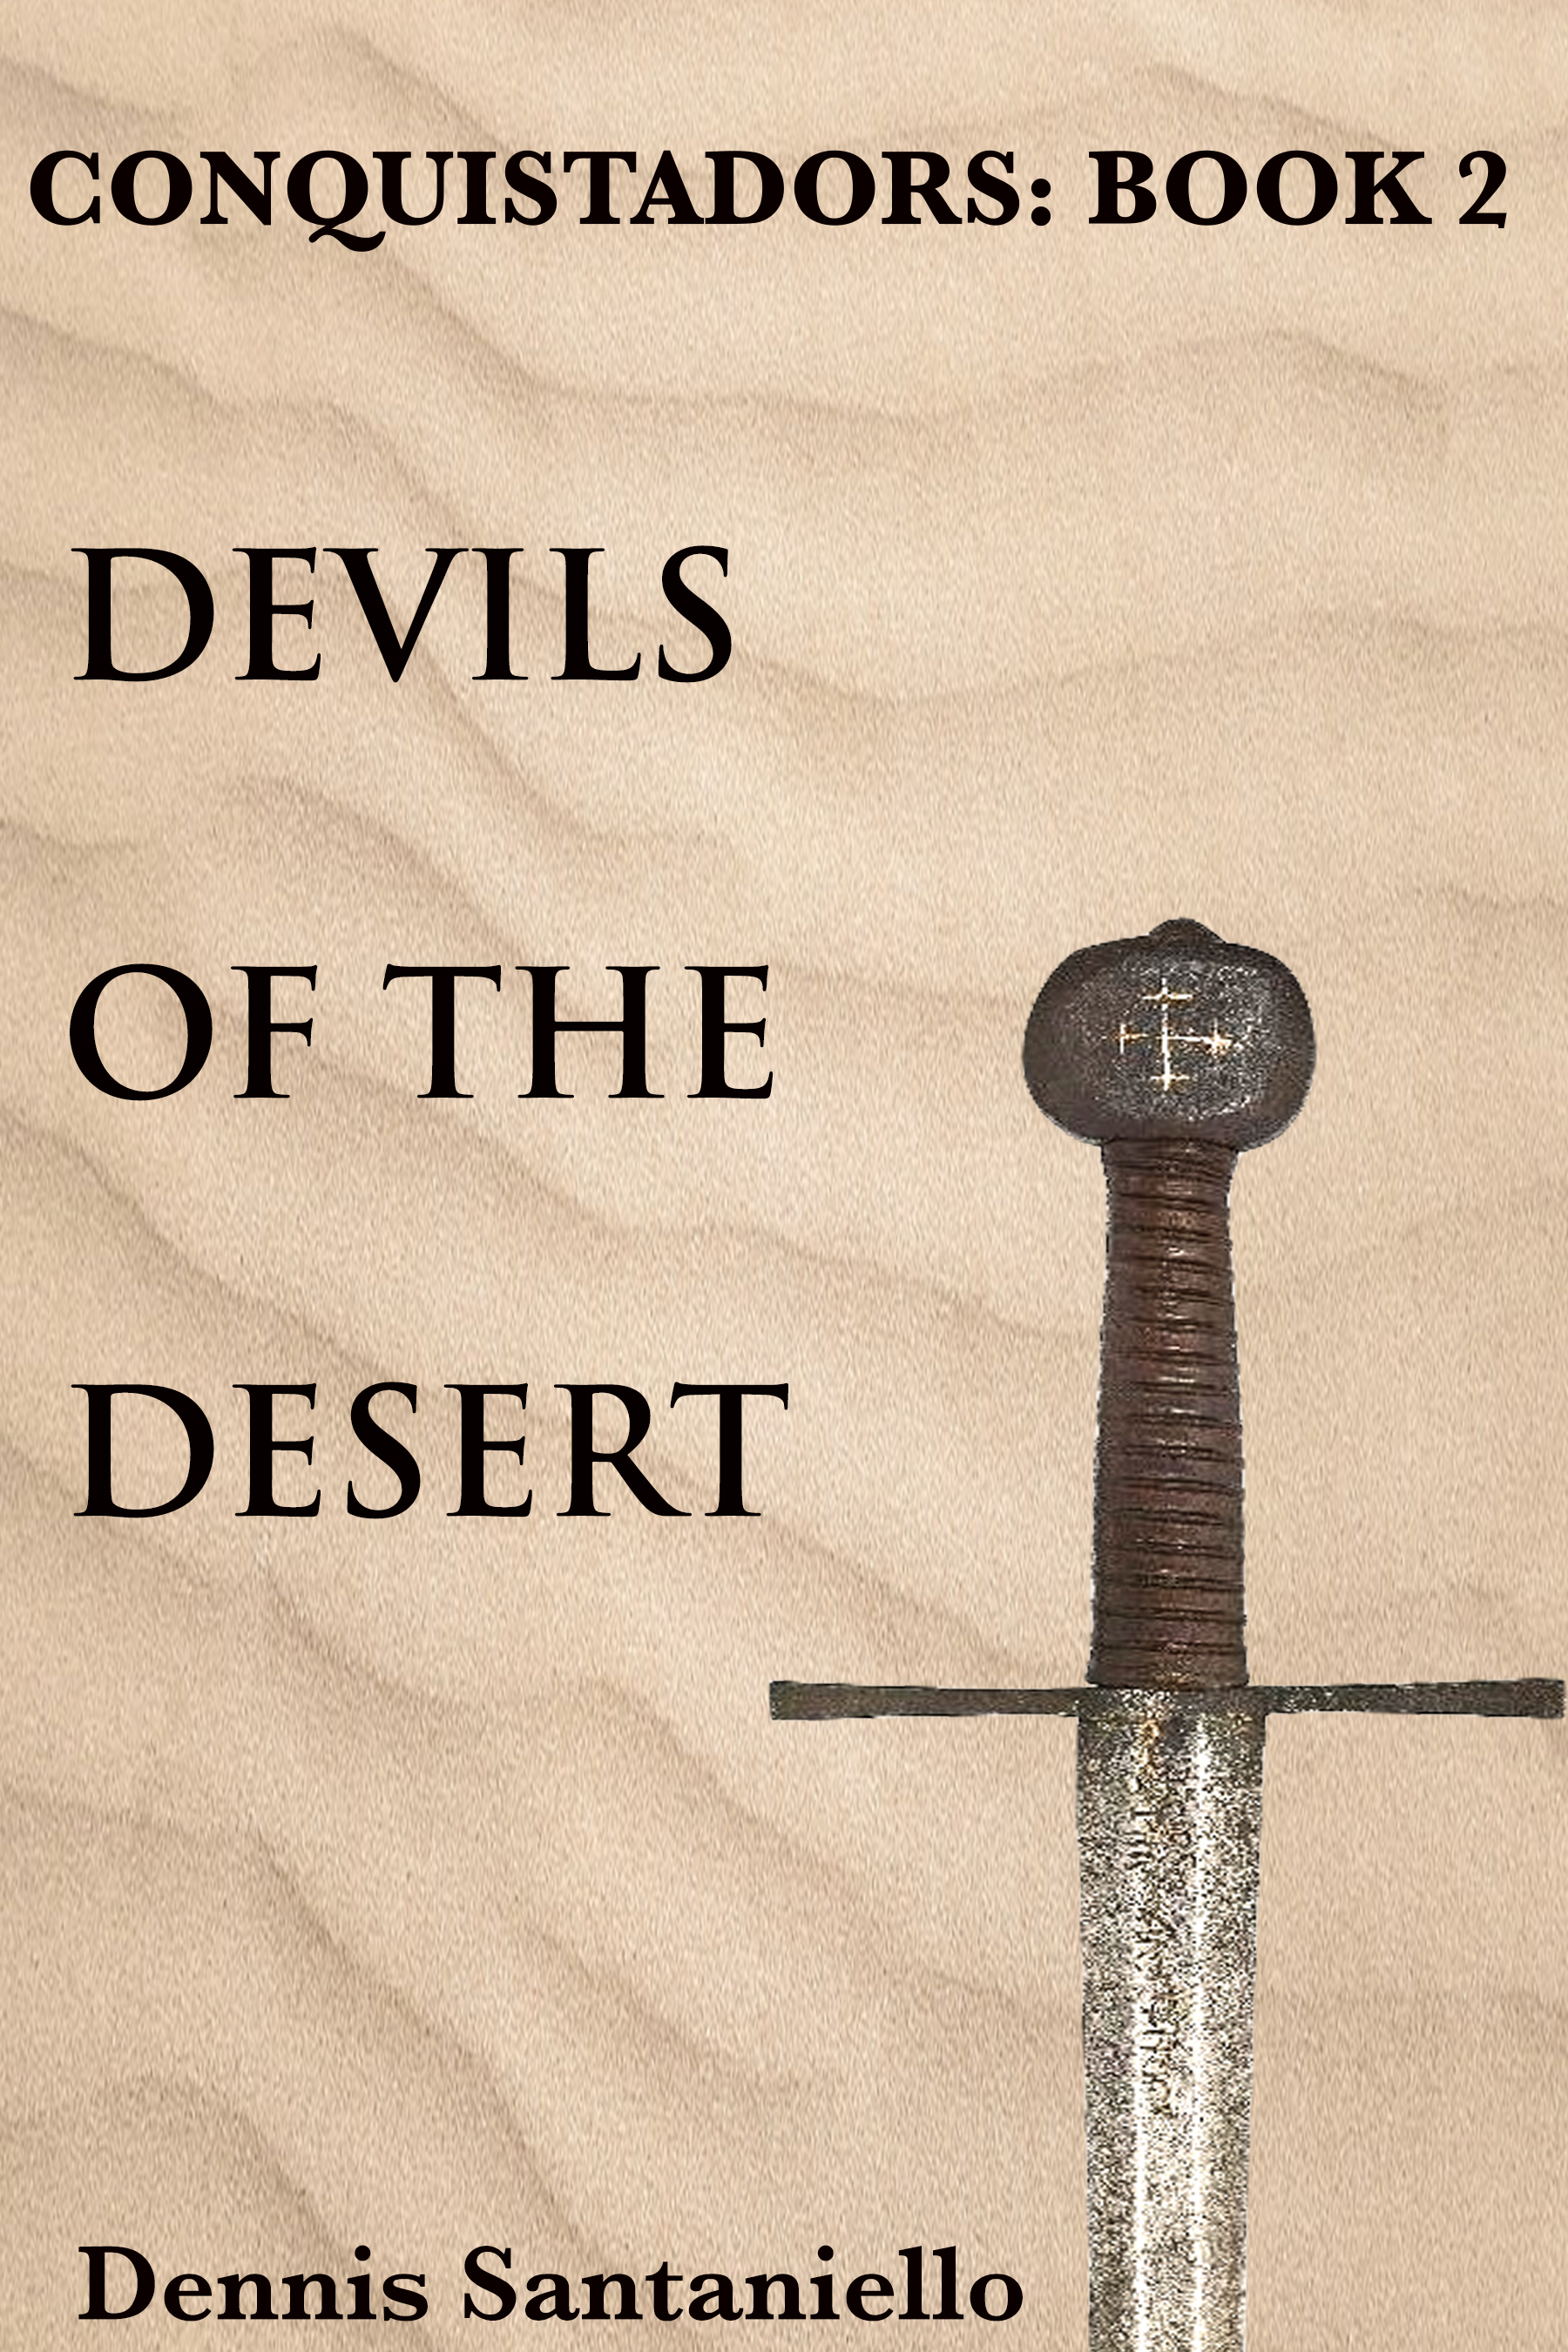 """DEVILS OF THE DESERT - BOOK 2: CONQUISTADORS TRILOGY Now a seasoned conquistador, Sardina joins the Coronado Expedition to find the Seven Cities of Gold. The desert, however, gives no quarter and proves to be just as cruel as the conquistadors themselves. But when the Spanish come across a strange mystic shaman named """"The Turk"""" their hopes and dreams return. And as their search continues, Sardina's passage through hell leads to his own spiritual awakening. For what the Turk has to show him will change him forever.AMAZONKOBOBARNES AND NOBLEiTUNES"""